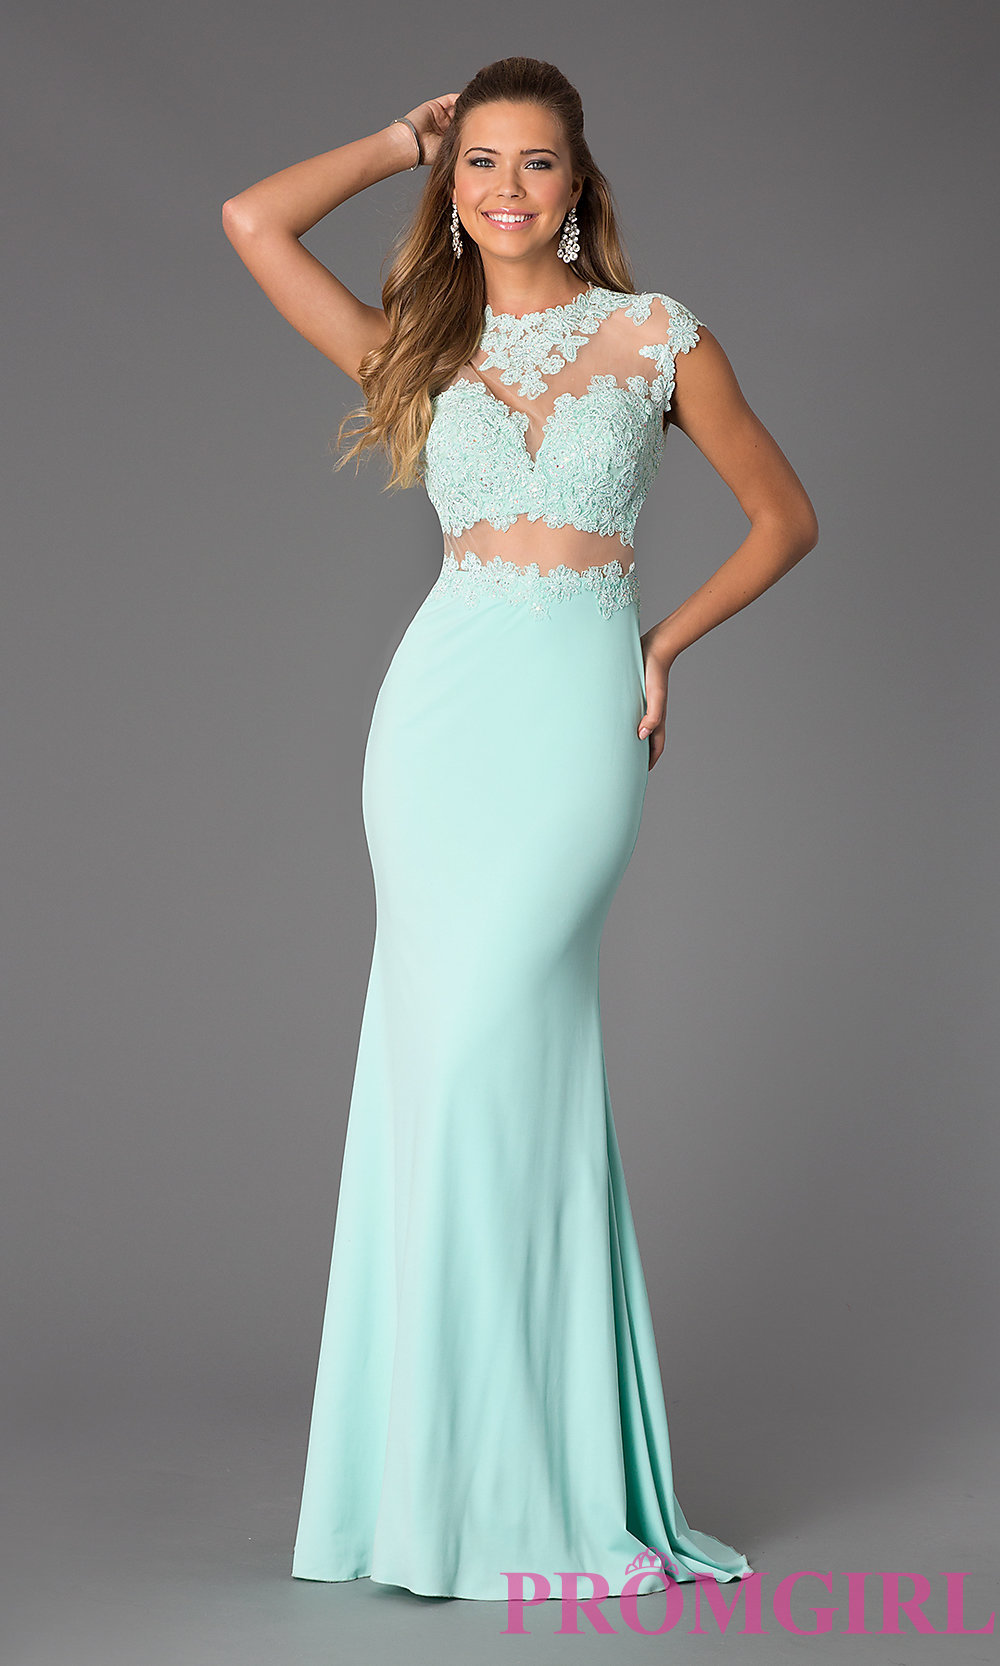 and Lace Floor Length JVN by Jovani Dress